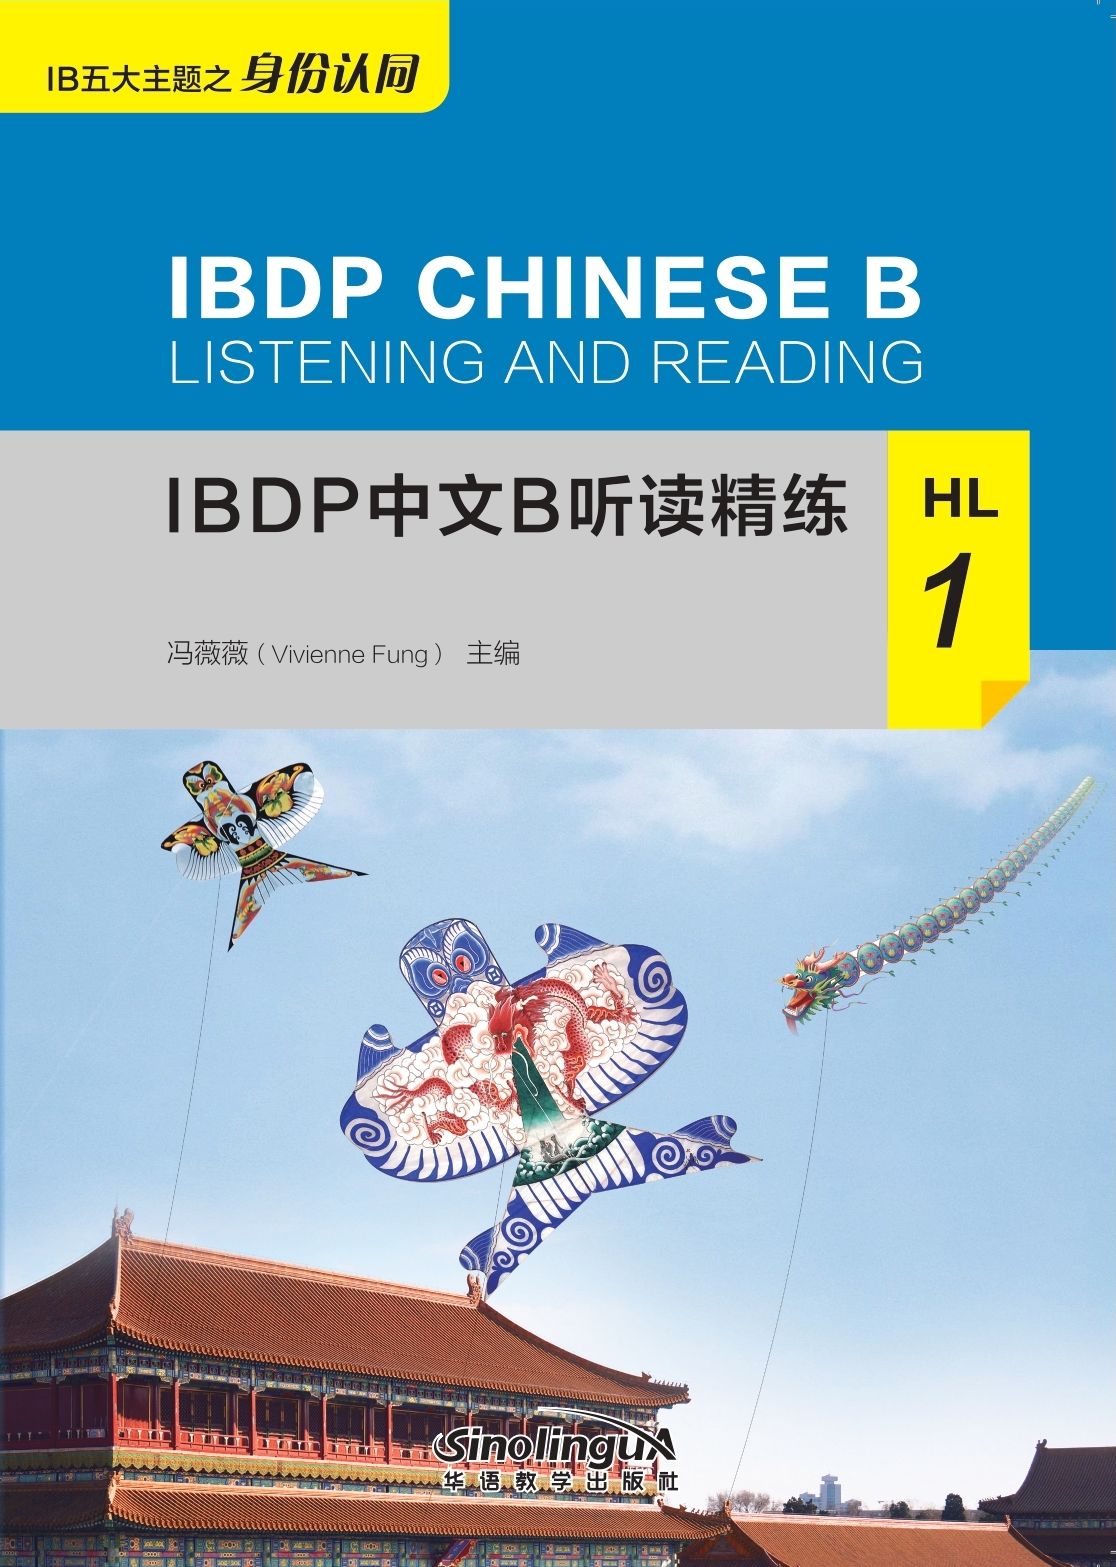 IBDP Chinese B Listening and Reading ·HL·1